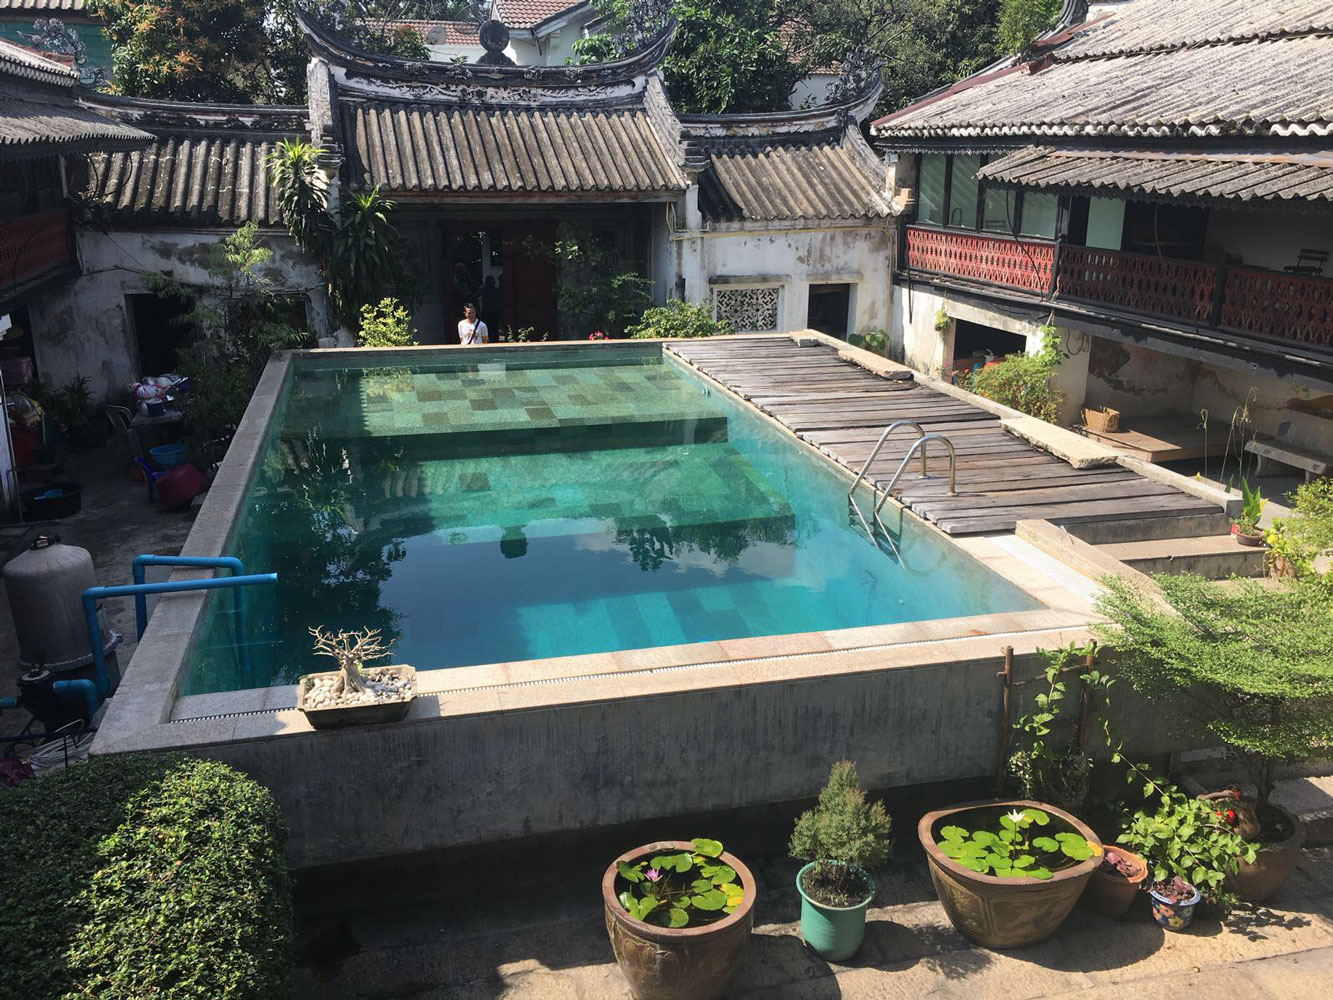 Bangkok Asian style pool filming location in Thailand